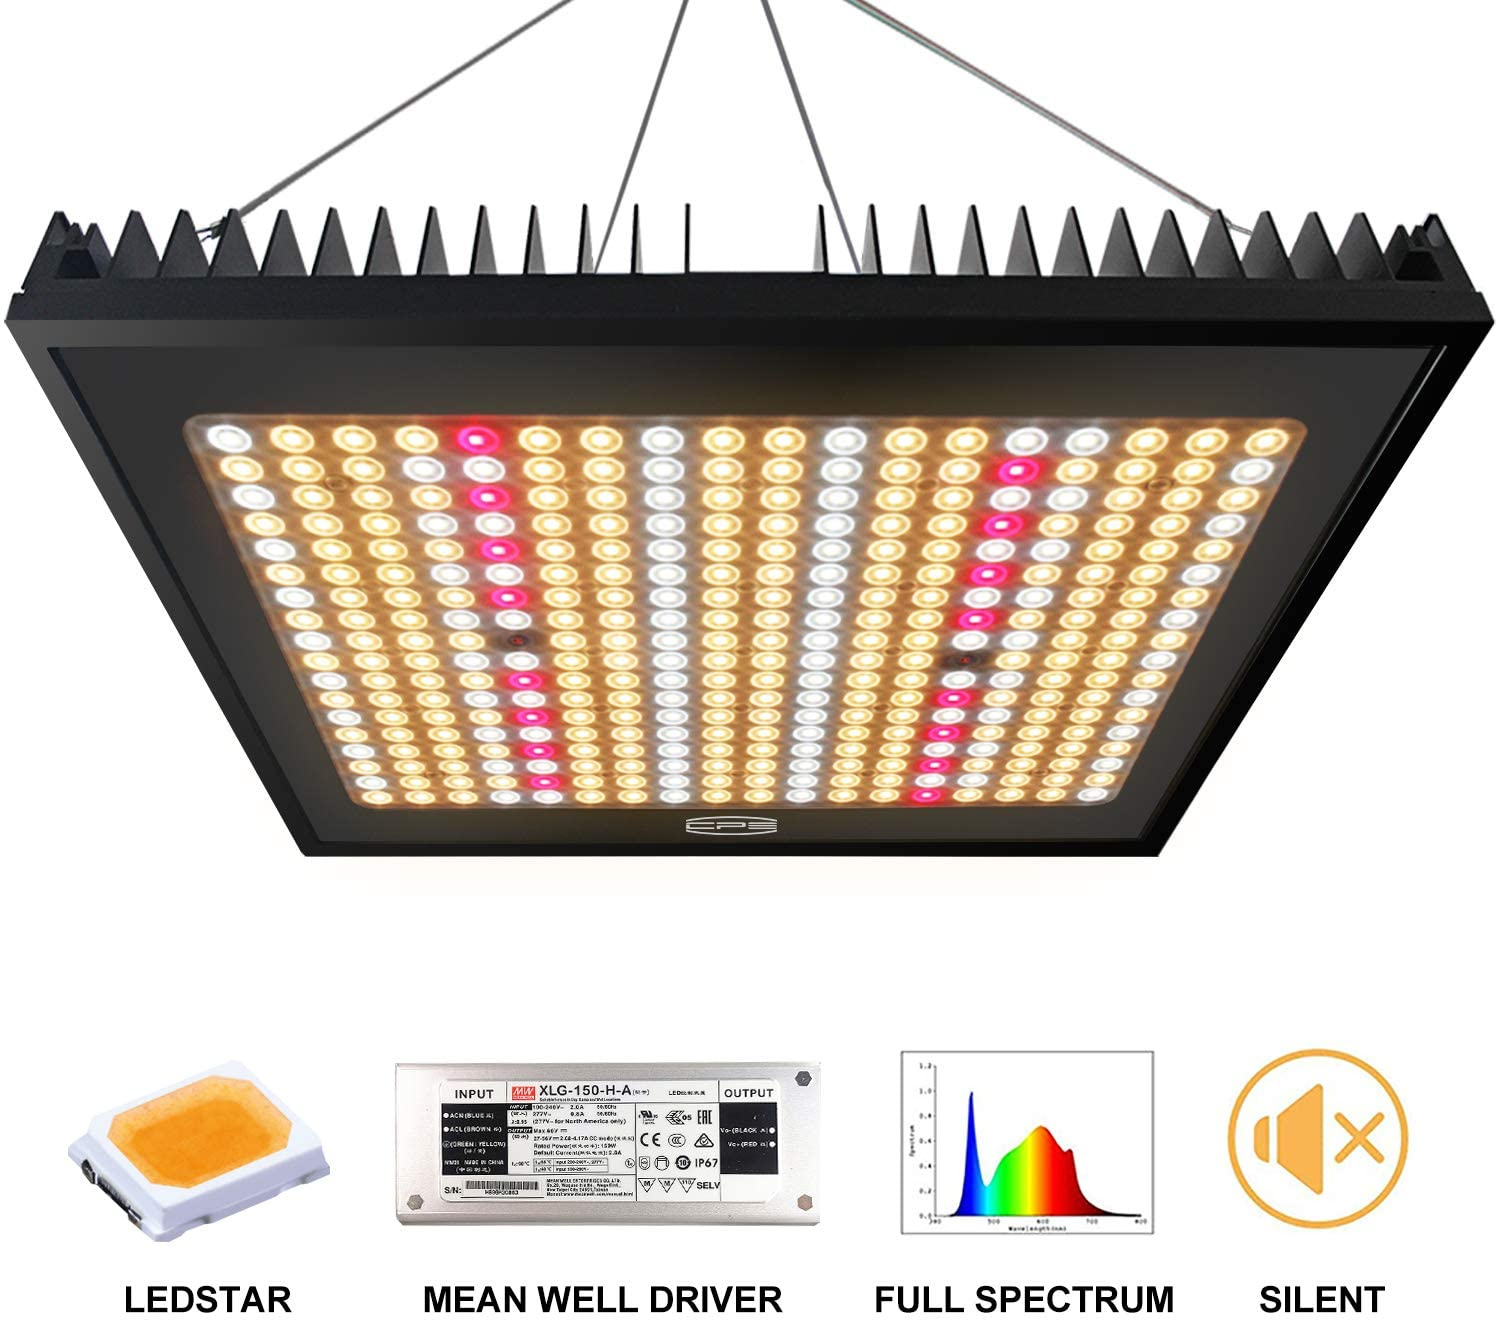 PCCOOLER CPS CP-1500 LED Plant Grow Light 3×3ft Daylight Full Spectrum Infrared Plant Growing Light IP65 Grow Lamps for Indoor Plant Commercial LED Grow Hydroponic Growing Light Updated 324 LEDs